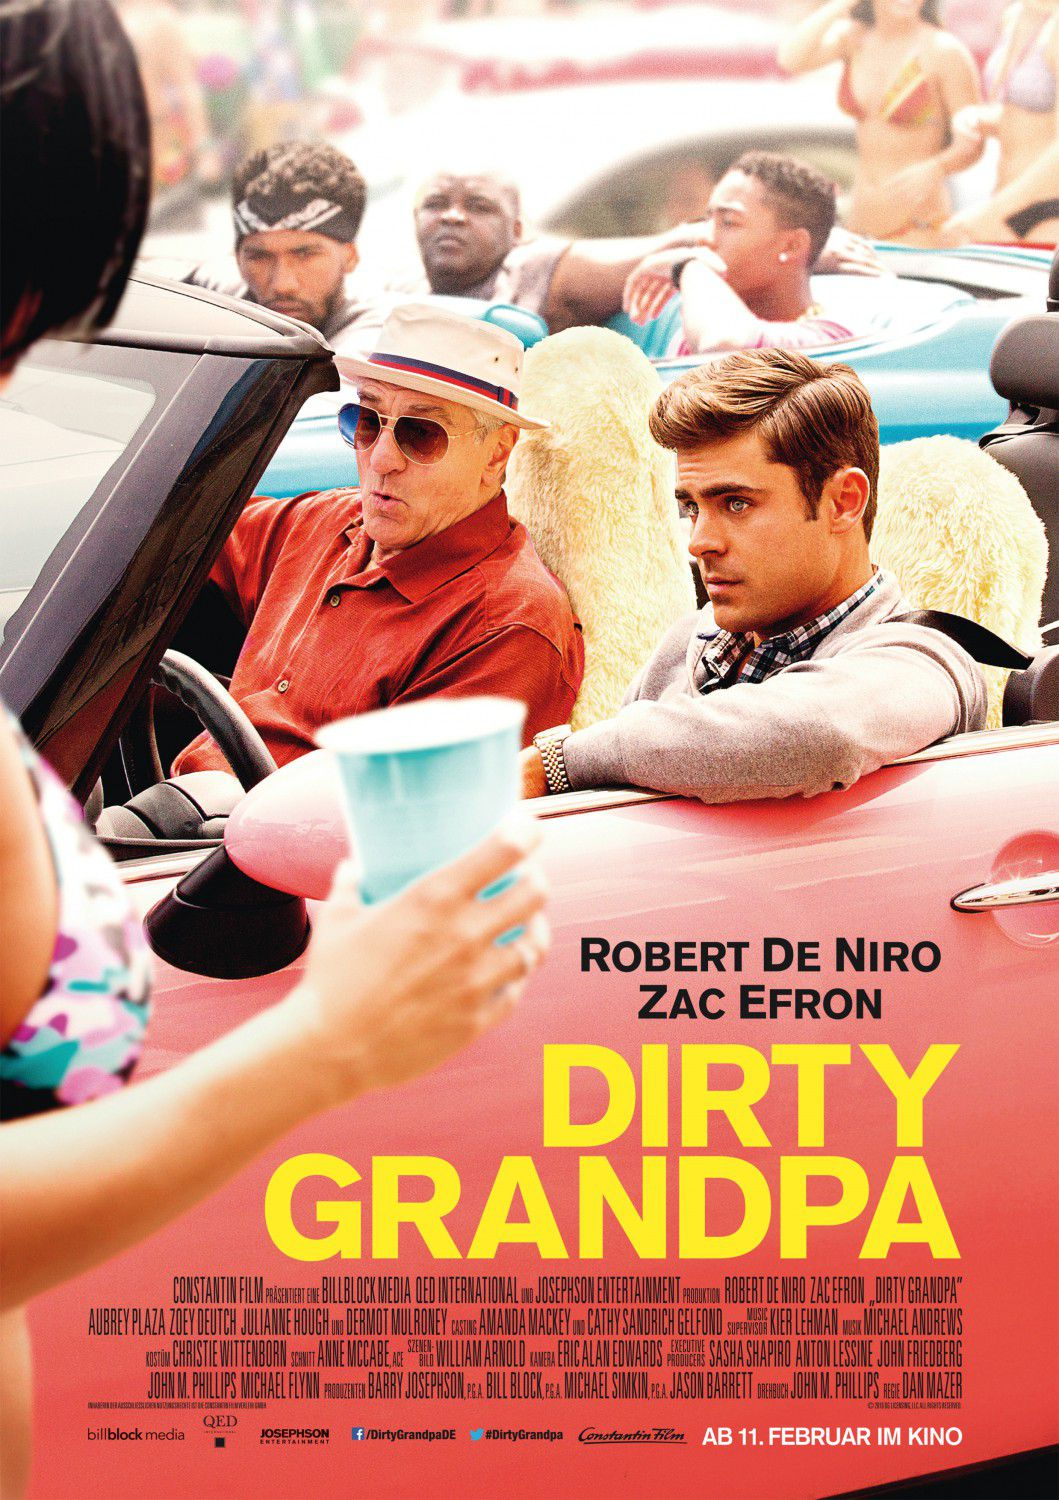 Dirty Grandpa - Lose your way Find your manhood - Zac Efron Robert De Niro Julianne Hough Aubrey Plaza- film comedy poster